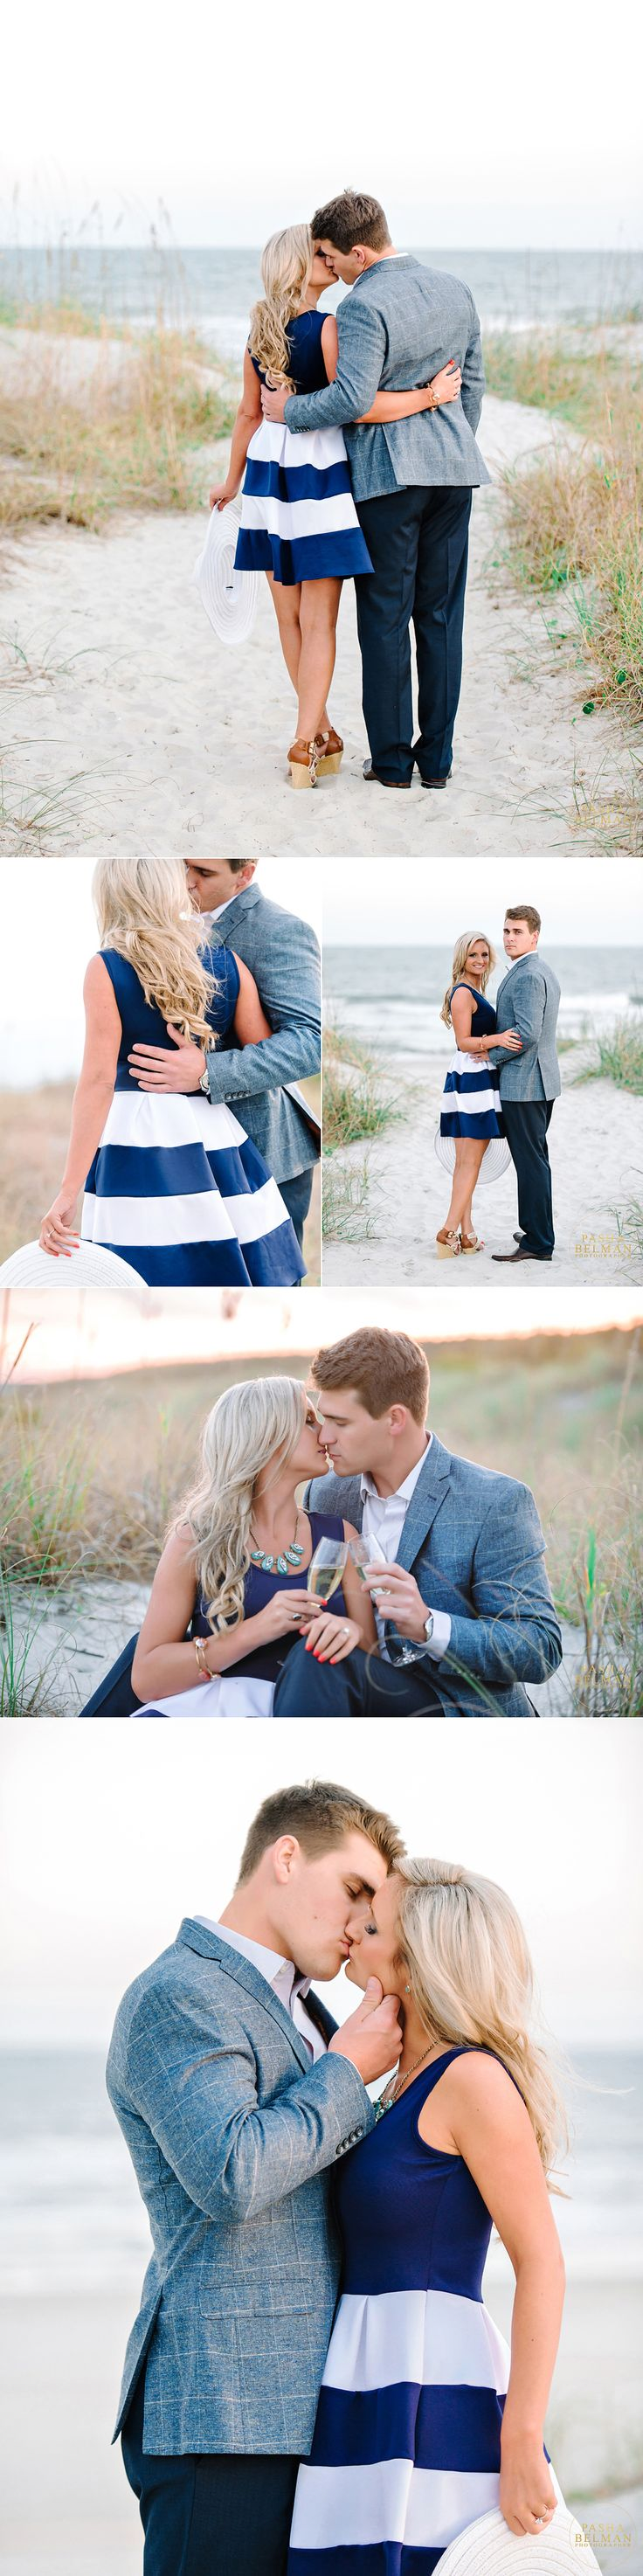 Best Engagement Shoot Poses, Favorite Poses for Engagement Shoots, Engagement Shoot Photo Inspiration in Charleston | Myrtle Beach | Wilmington | Columbia | South Carolina Photographer: Pasha Belman Photography